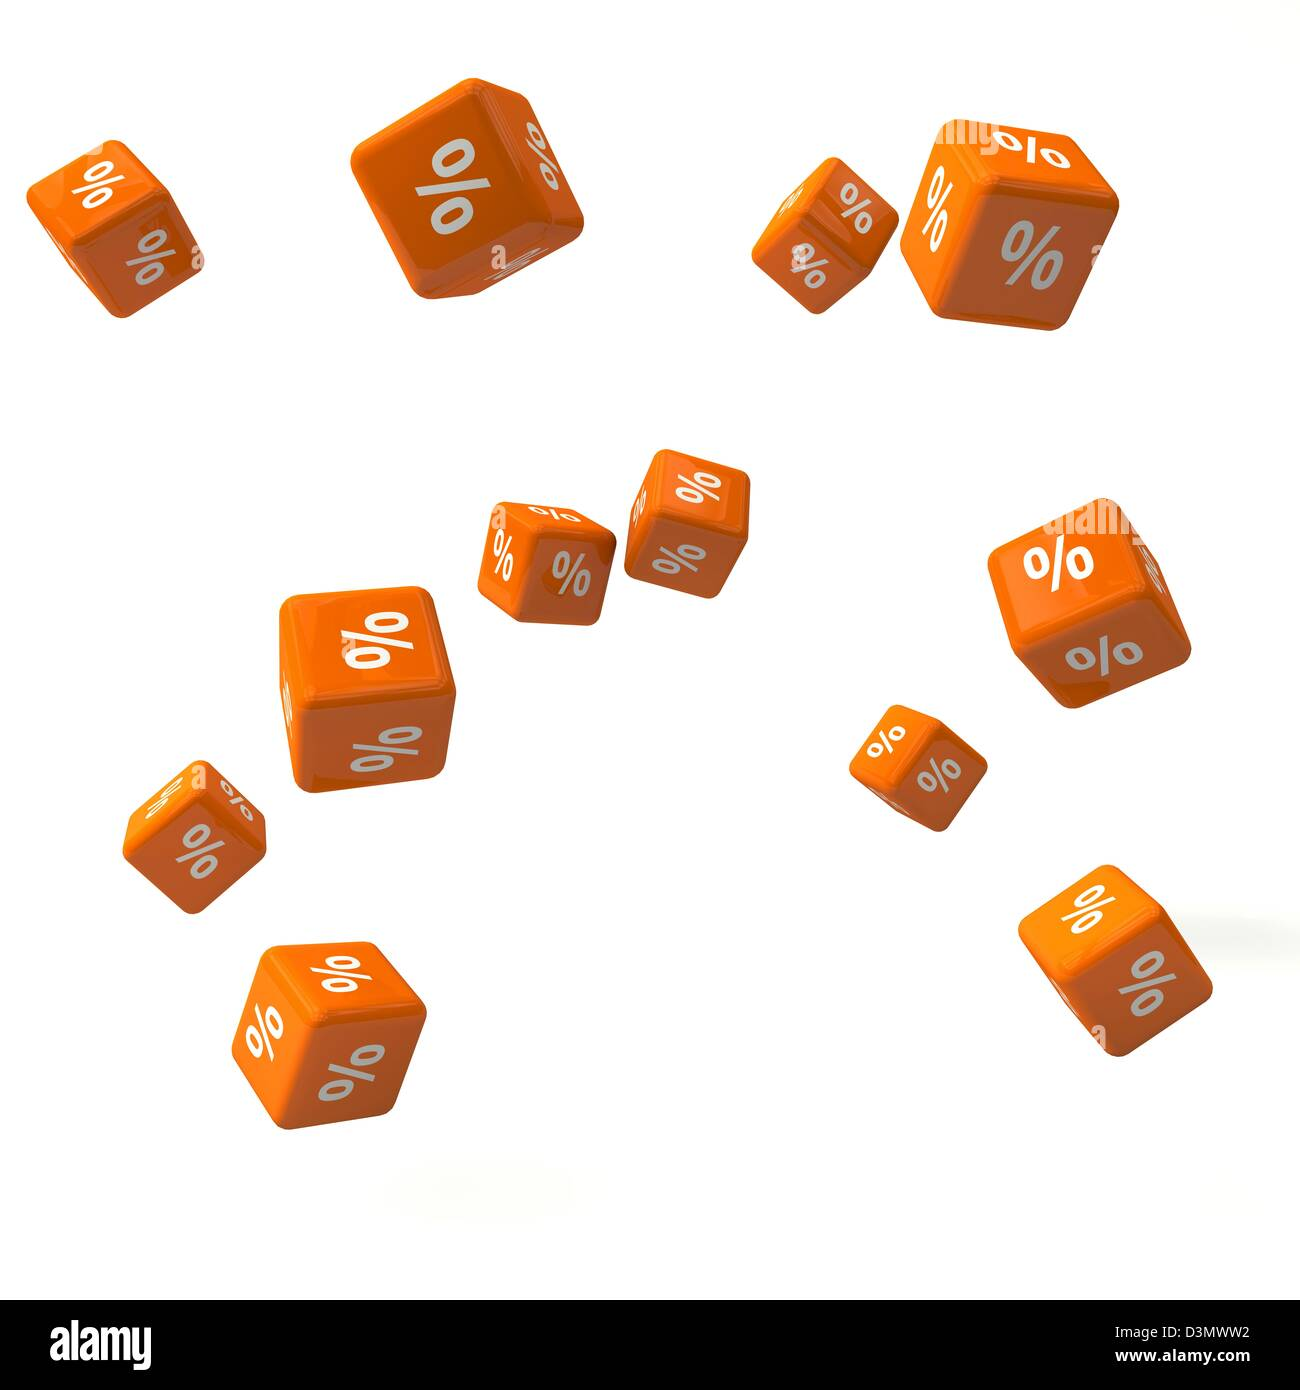 Flying Dice announce the summer sale and have percent signs printed on. - Stock Image